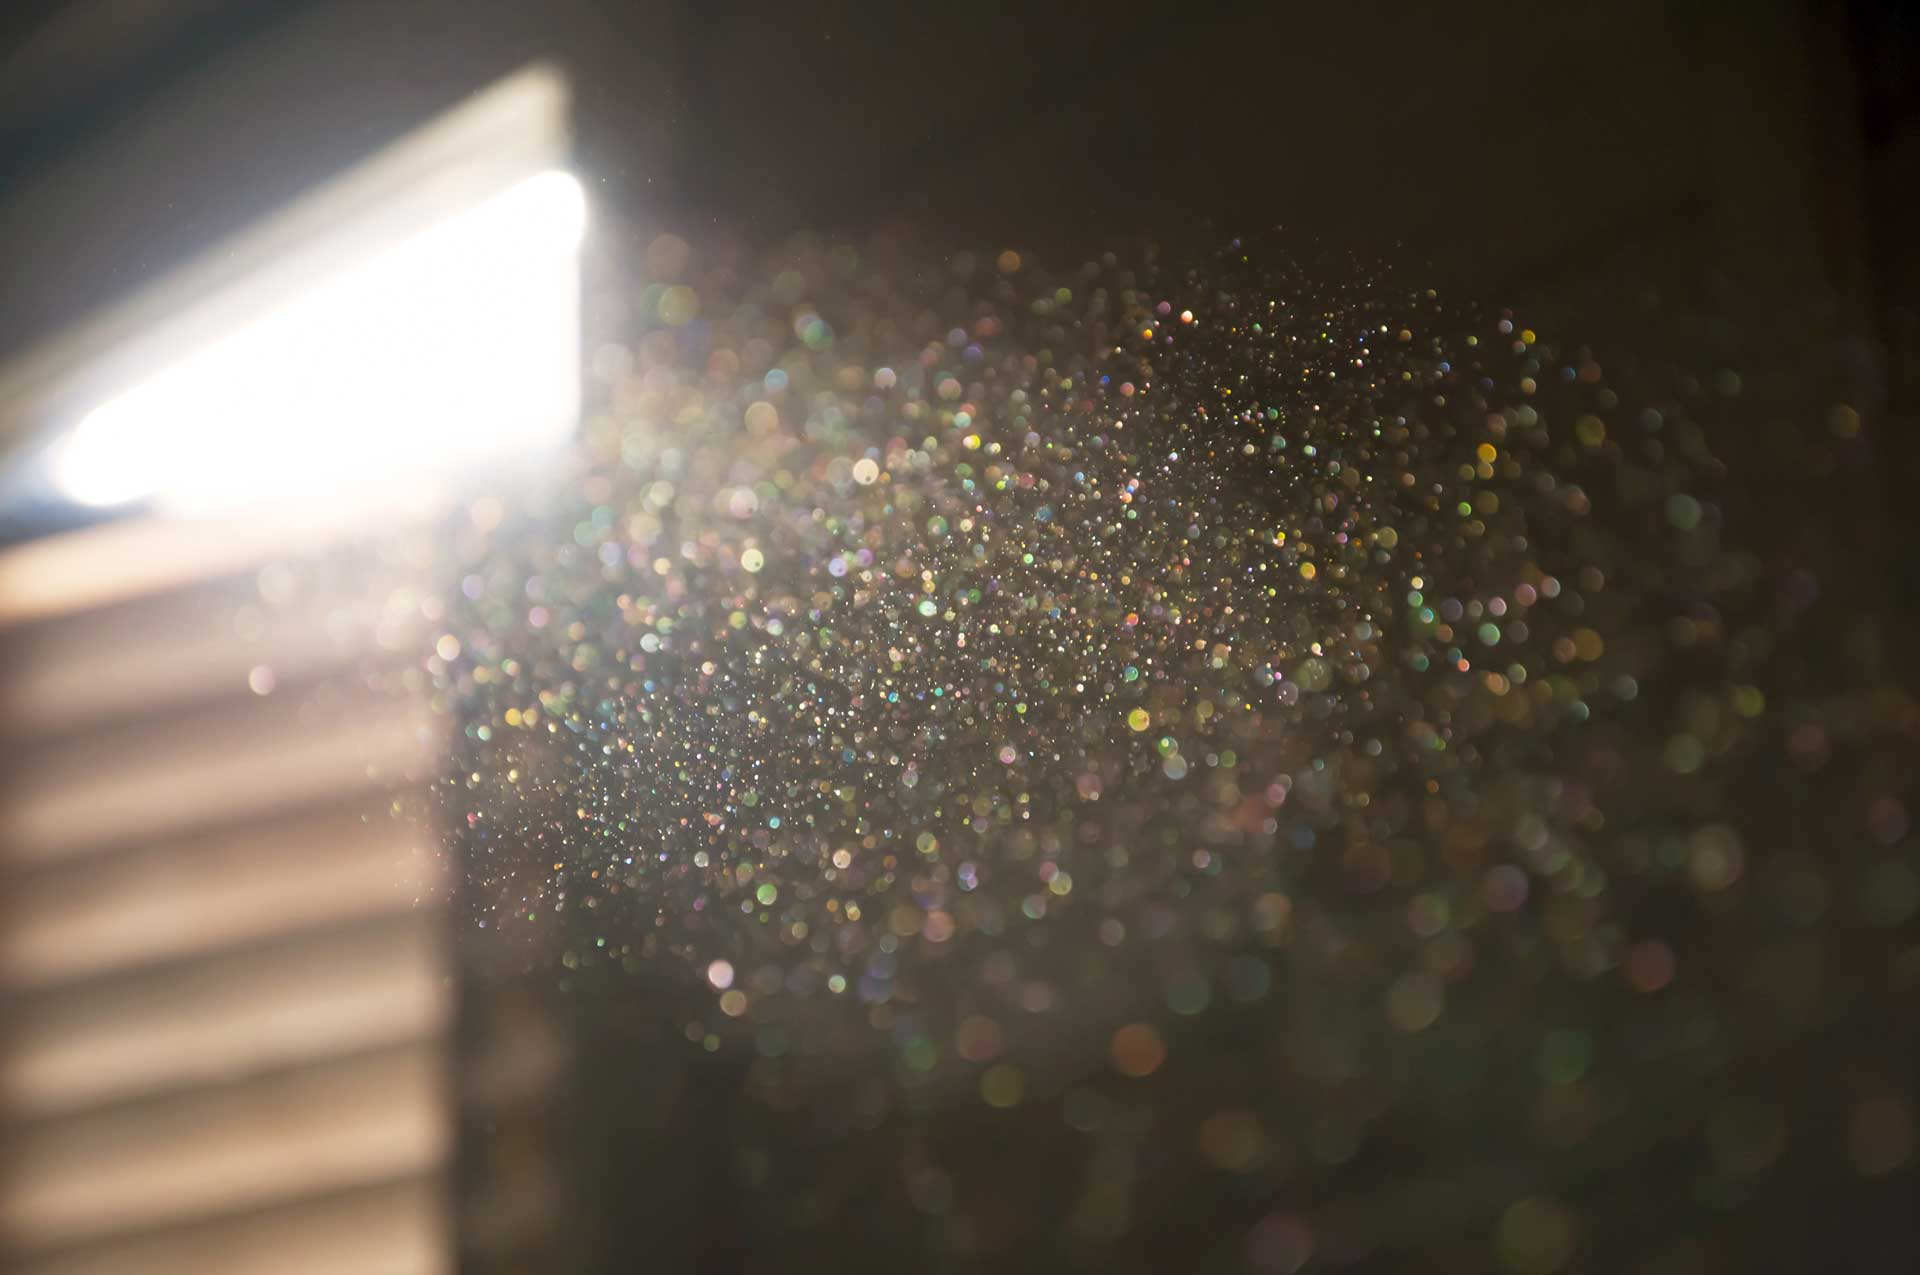 image of pollen in the home air which can damage carpet and upholstery fabric